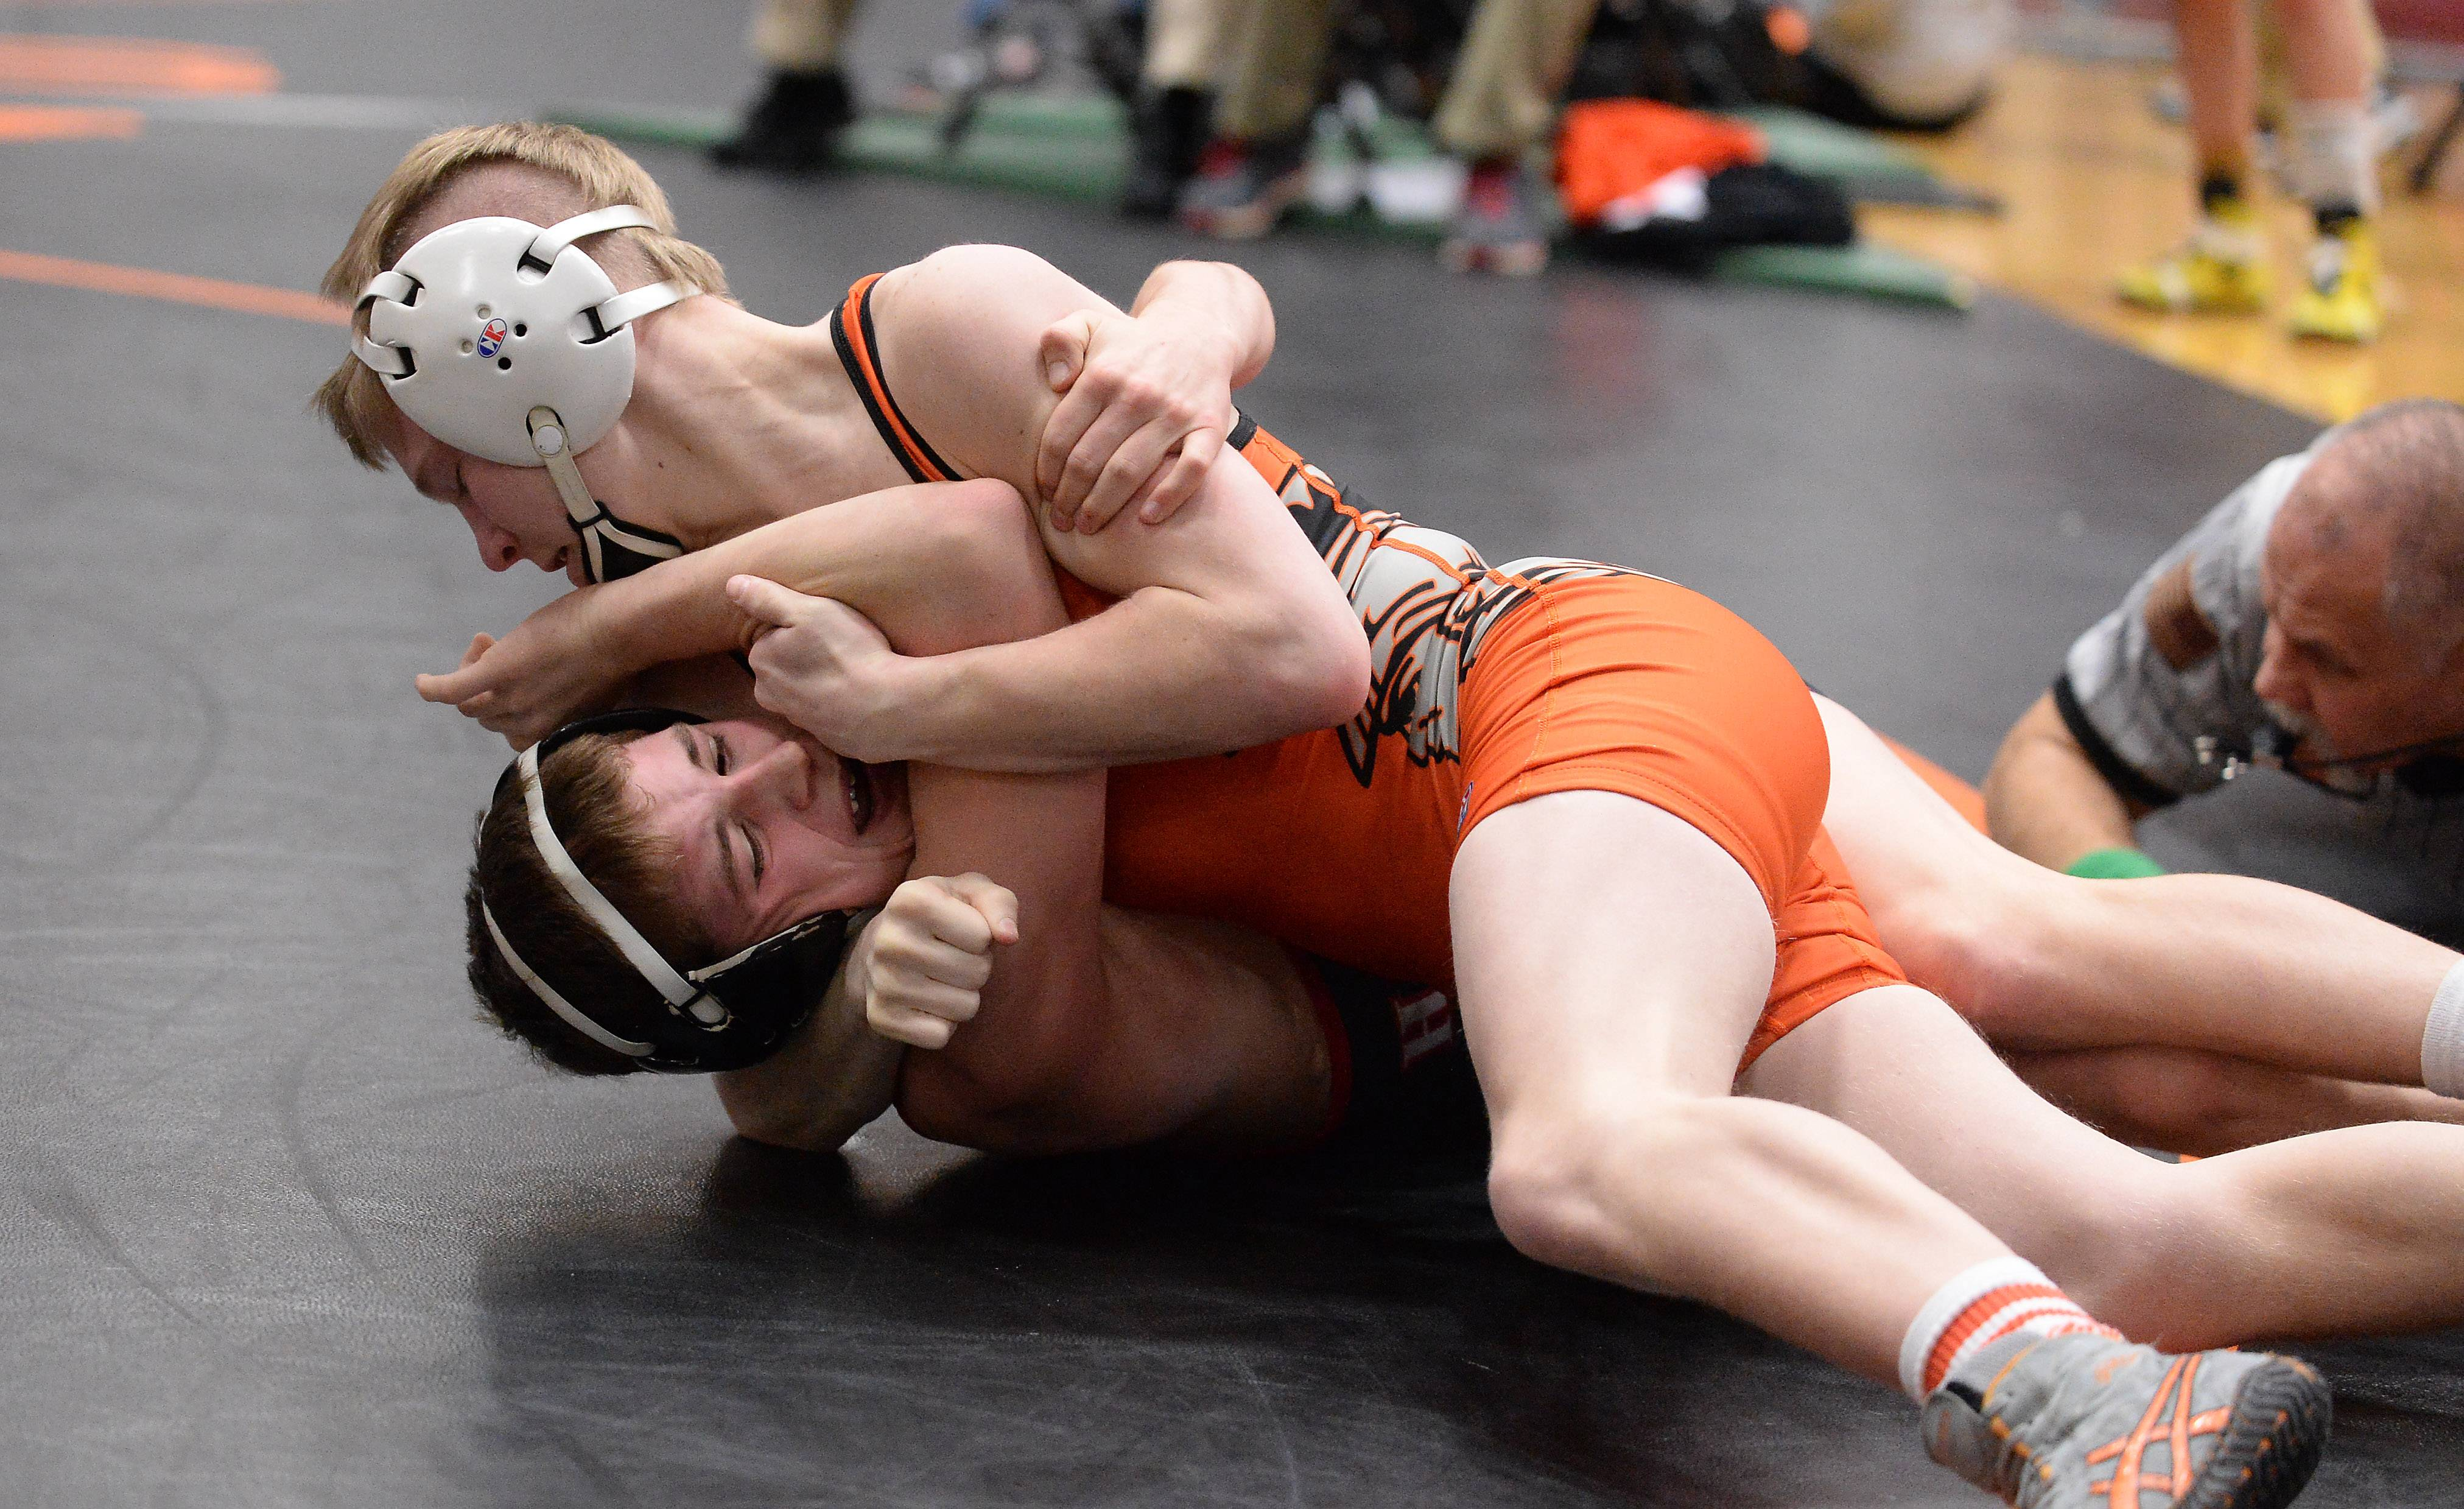 Ian Mullen of McHenry overpowers Zach Spencer of Huntley in the 106 weight class for the pin and the win at the 2015 Fox Valley Conference Wrestling Tournament at McHenry High School.